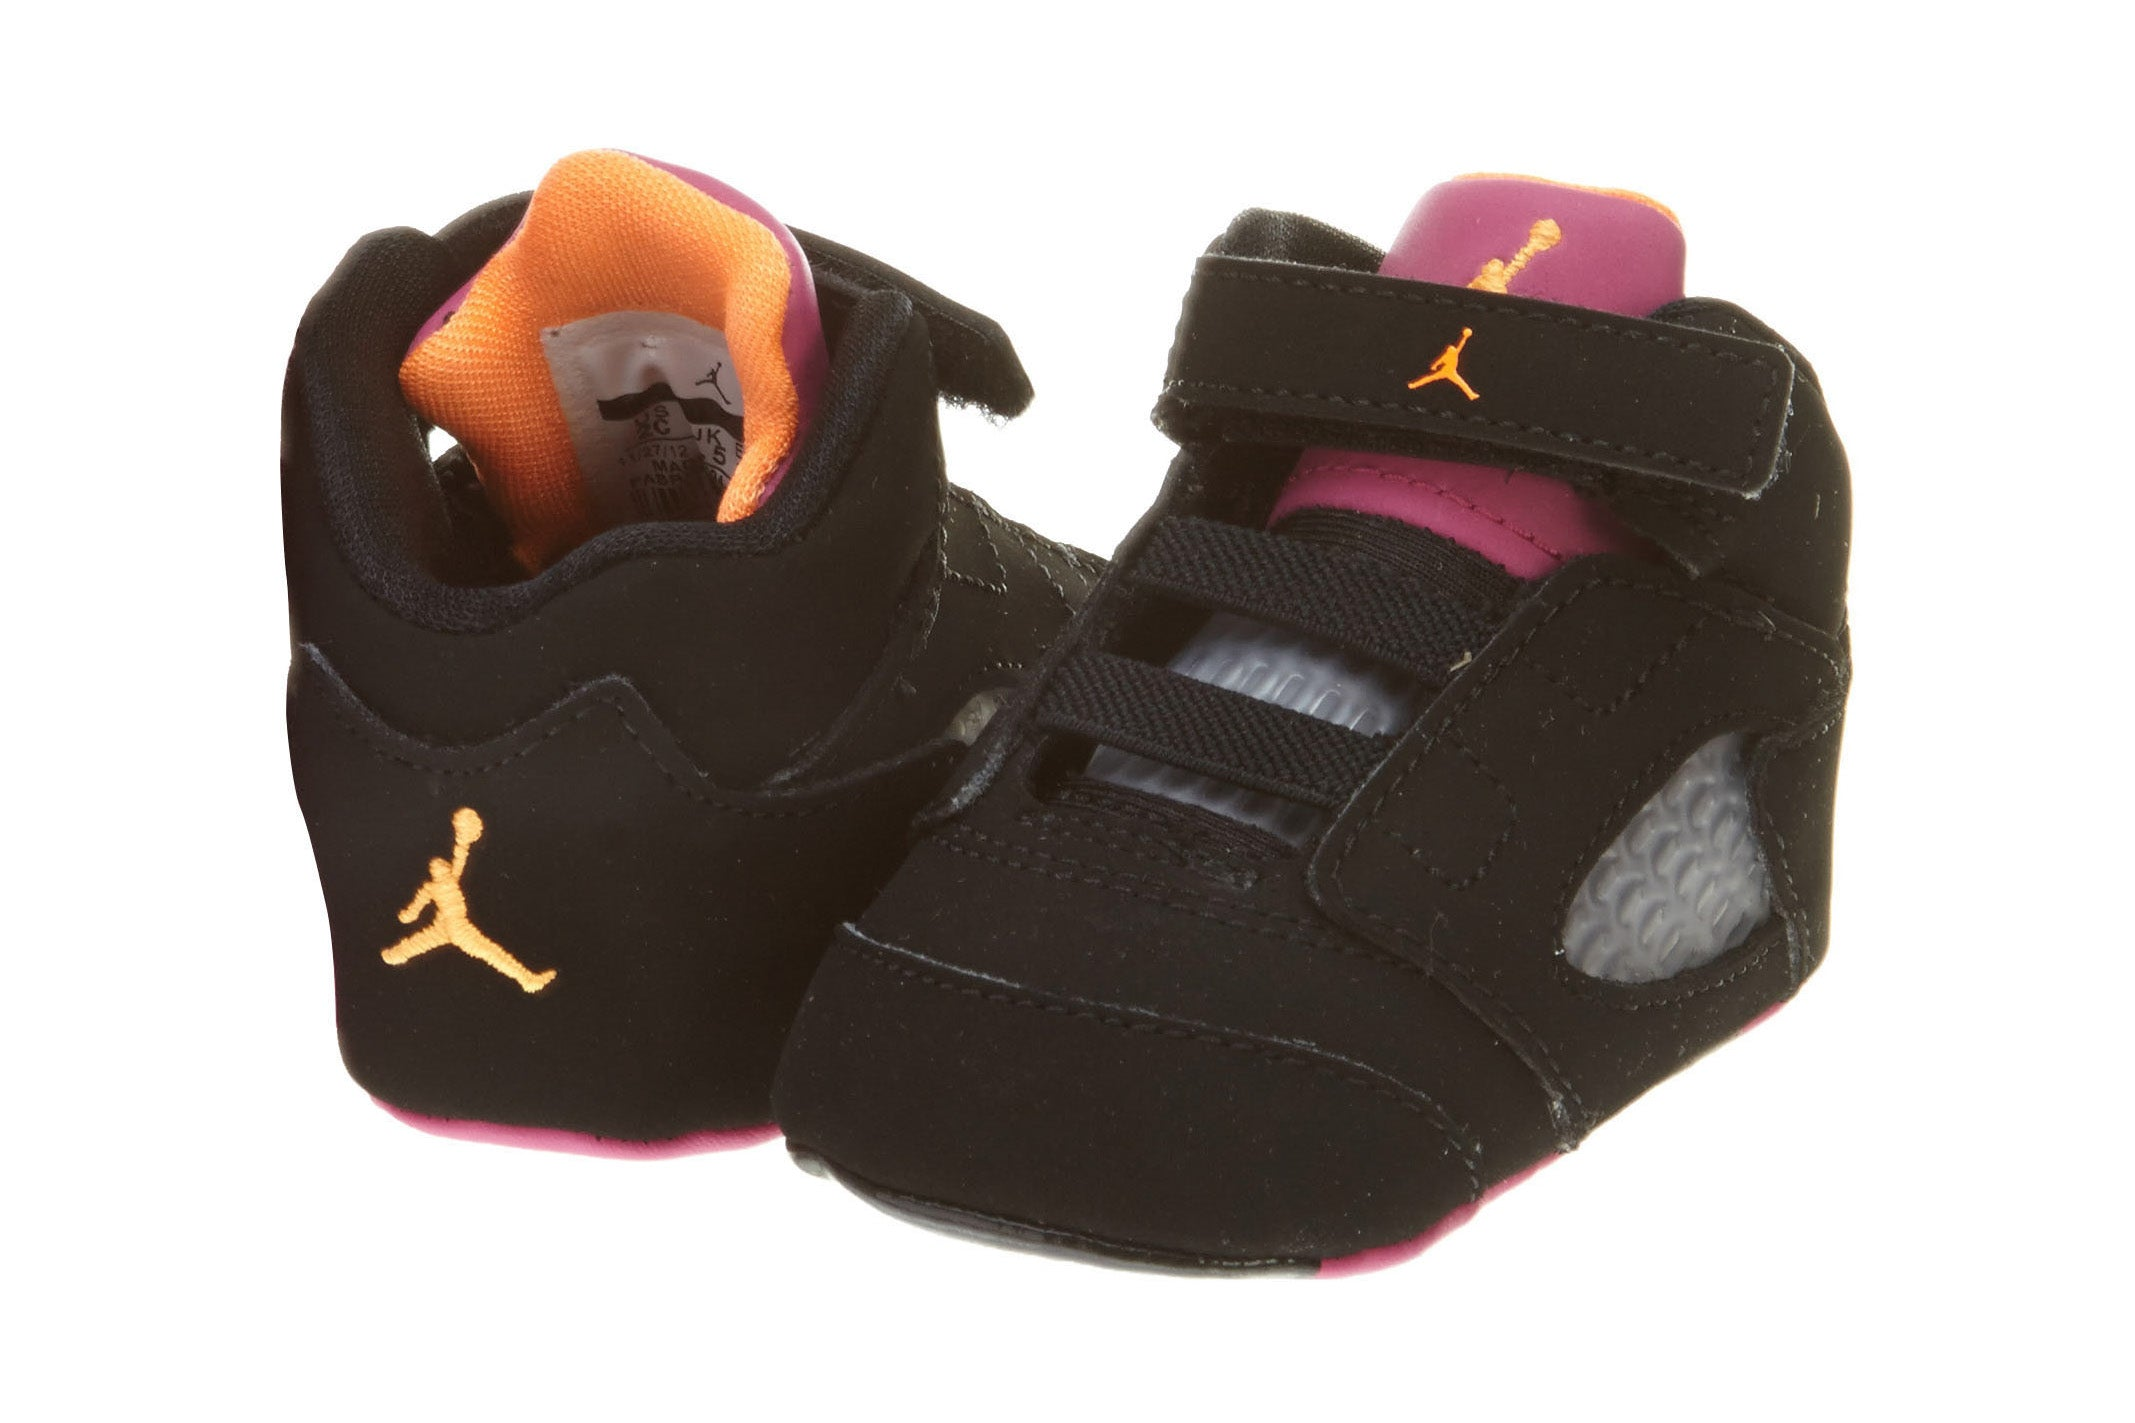 812814834710 Jordan Retro 5 Crib Shoe Black Pink Orange Boys   Girls Style  552494